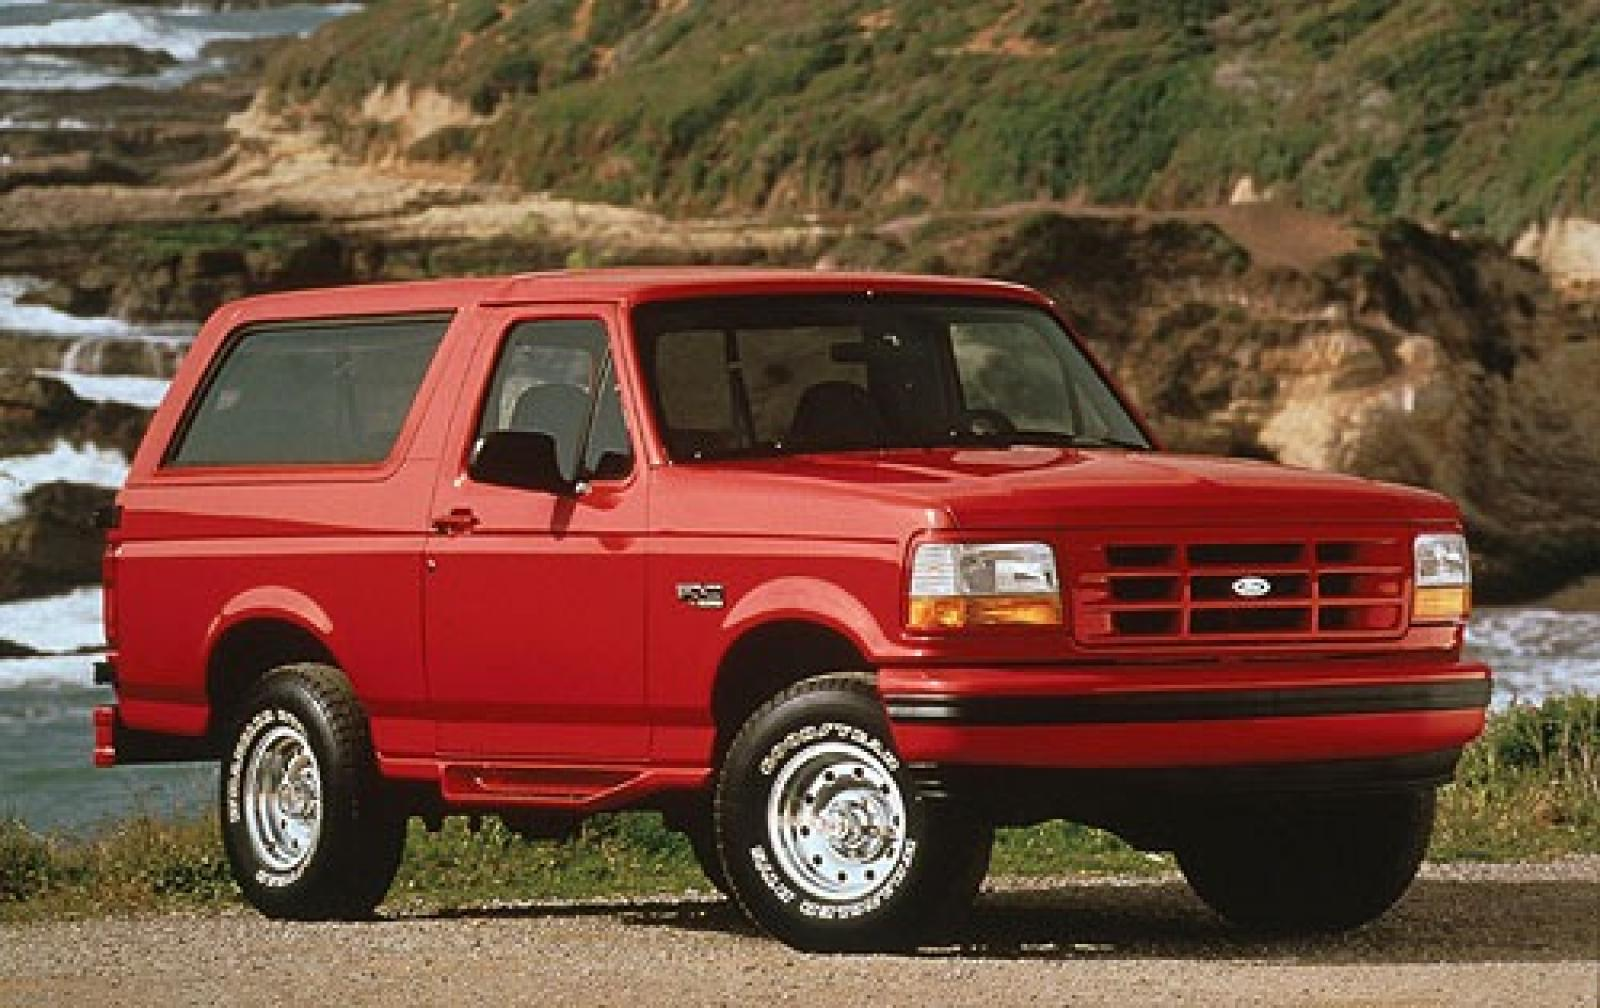 1996 Ford Bronco Information And Photos Zomb Drive